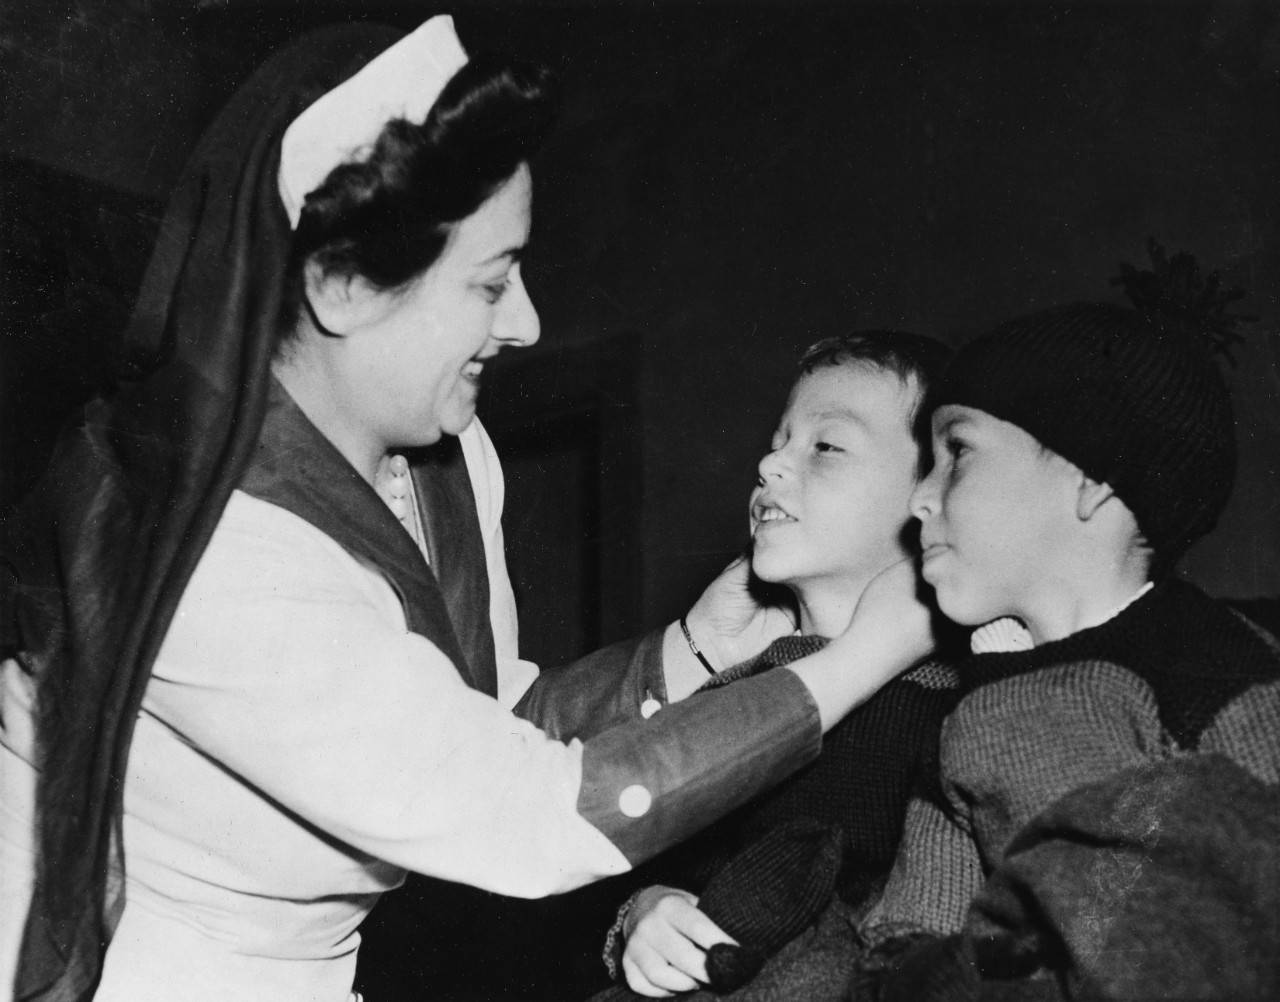 January 1942. Thomas Carroll Jr., 5, and his brother, Jimmy, were evacuated from Honolulu to San Francisco with their mother after the attack on Pearl Harbor in WWII. Here, Volunteer Mrs. H. M. Edlin outfits them with new clothing. Red Cross Photo by Bill Nichols.